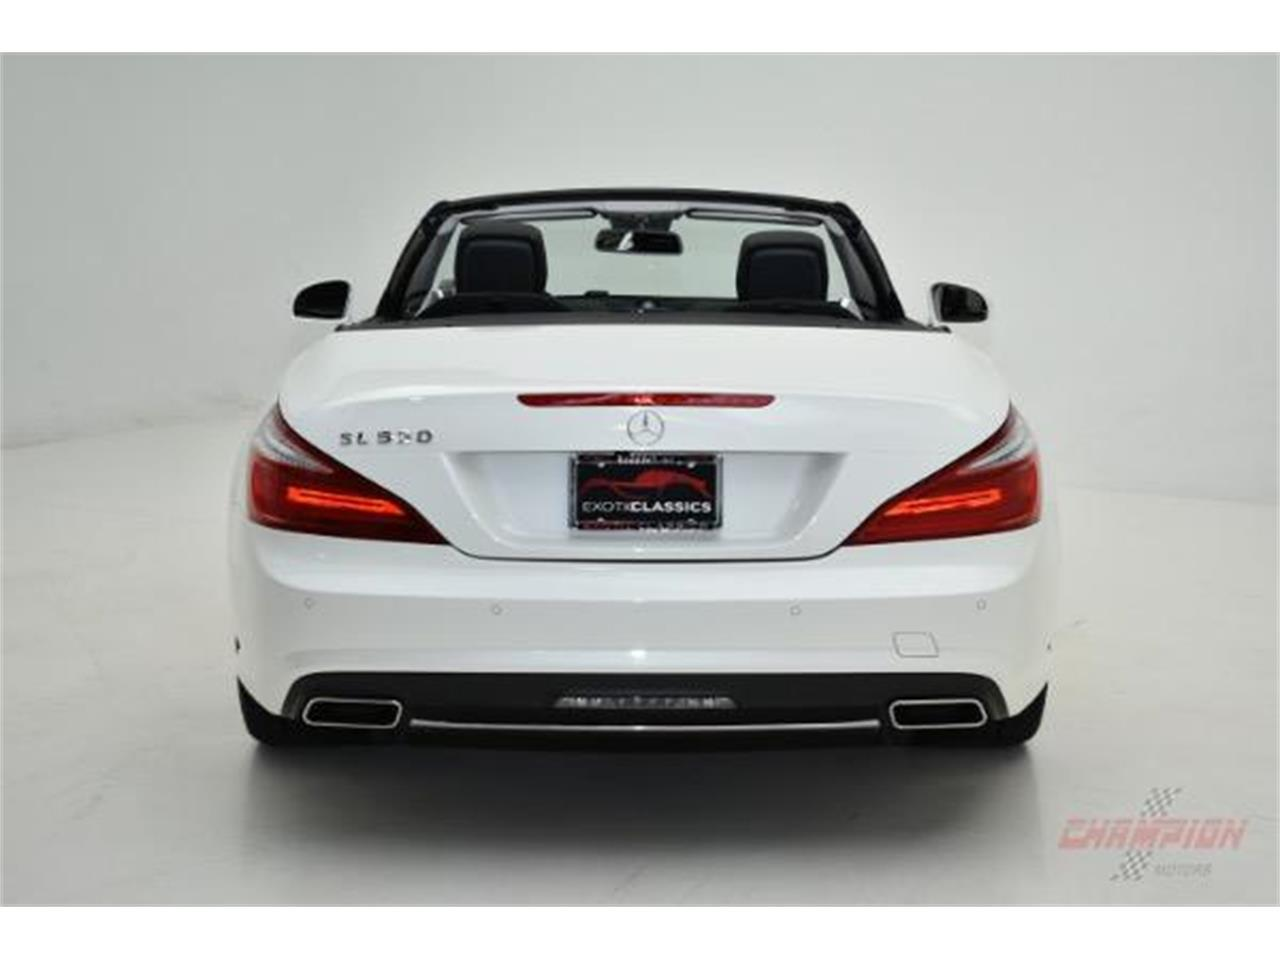 Large Picture of '13 SL-Class located in New York - $62,000.00 Offered by Champion Motors - LAMP